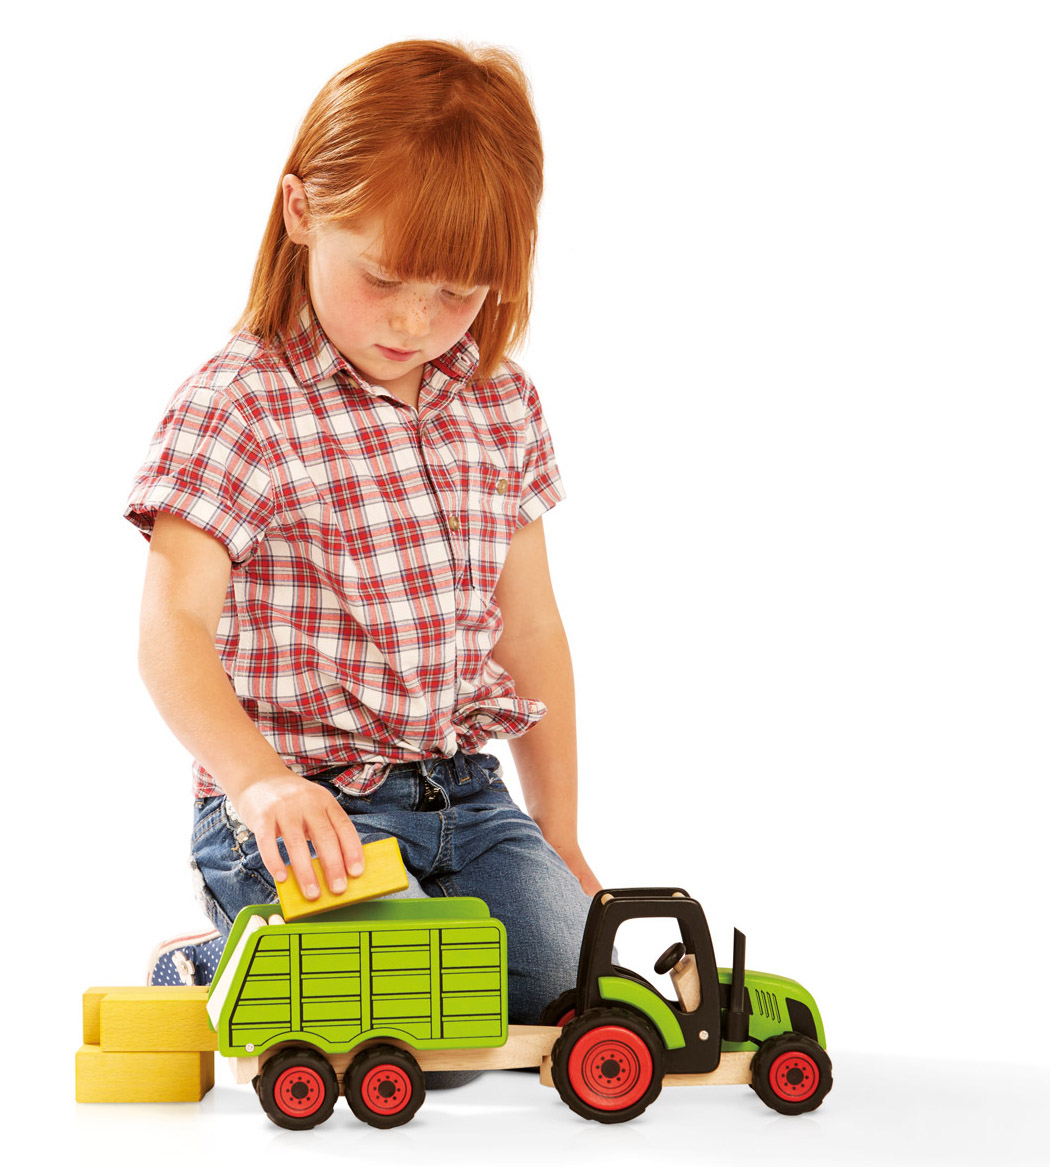 Girl with tractor